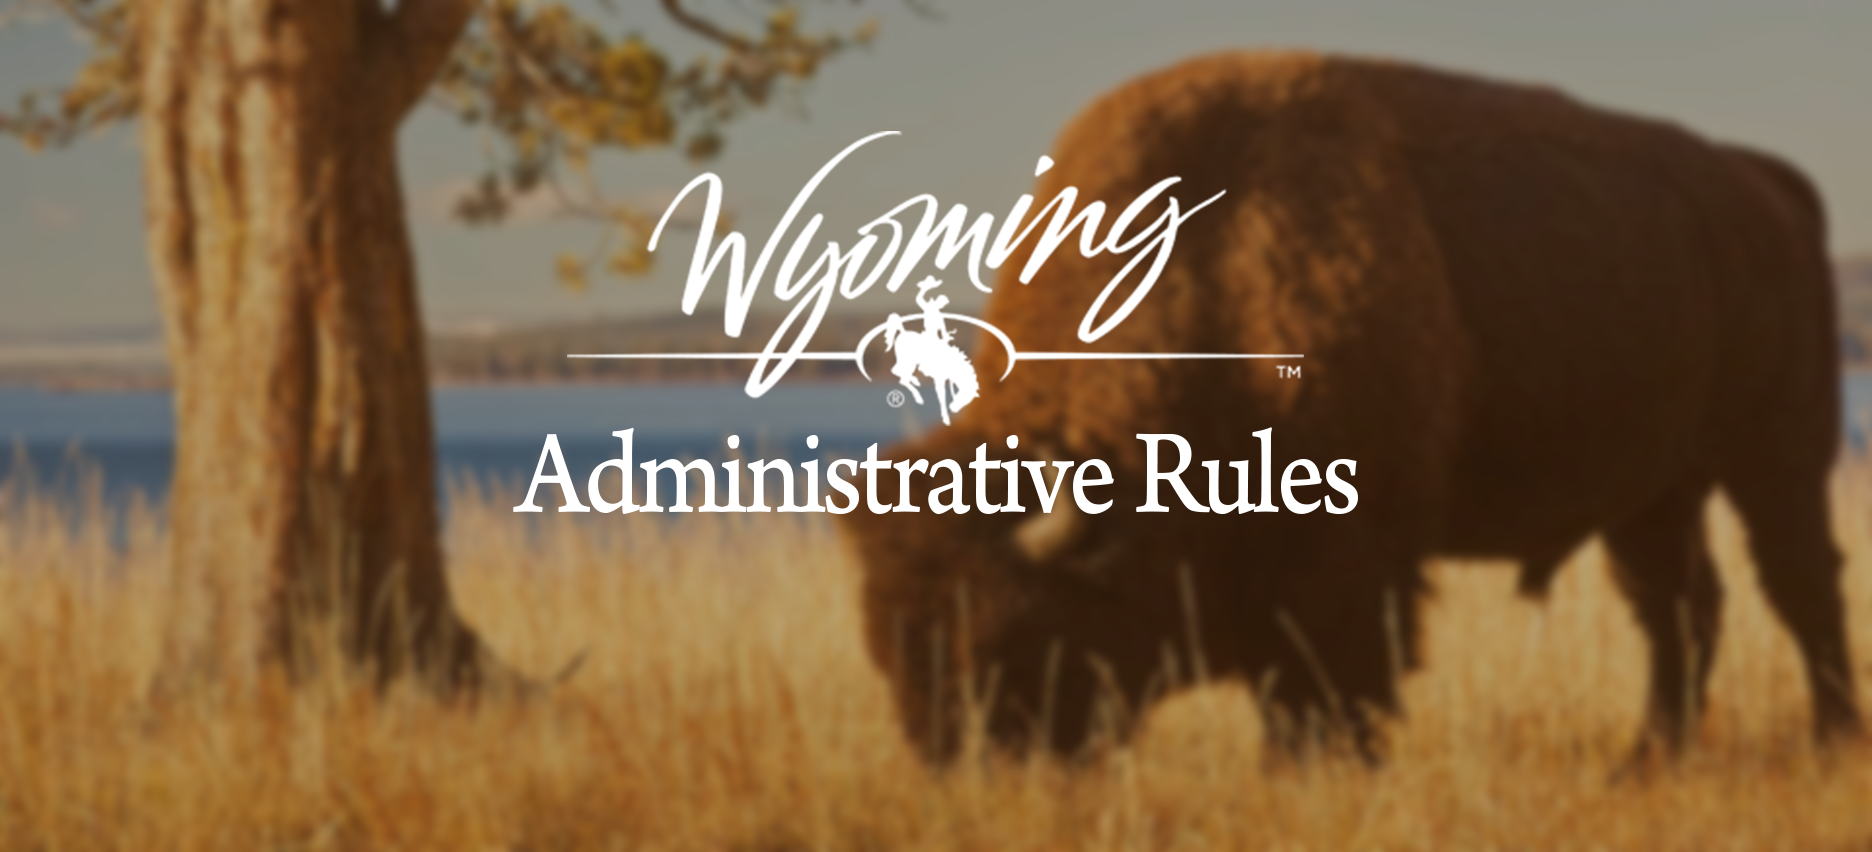 Visit the Administrative Rules website on phones, tablets or computers?